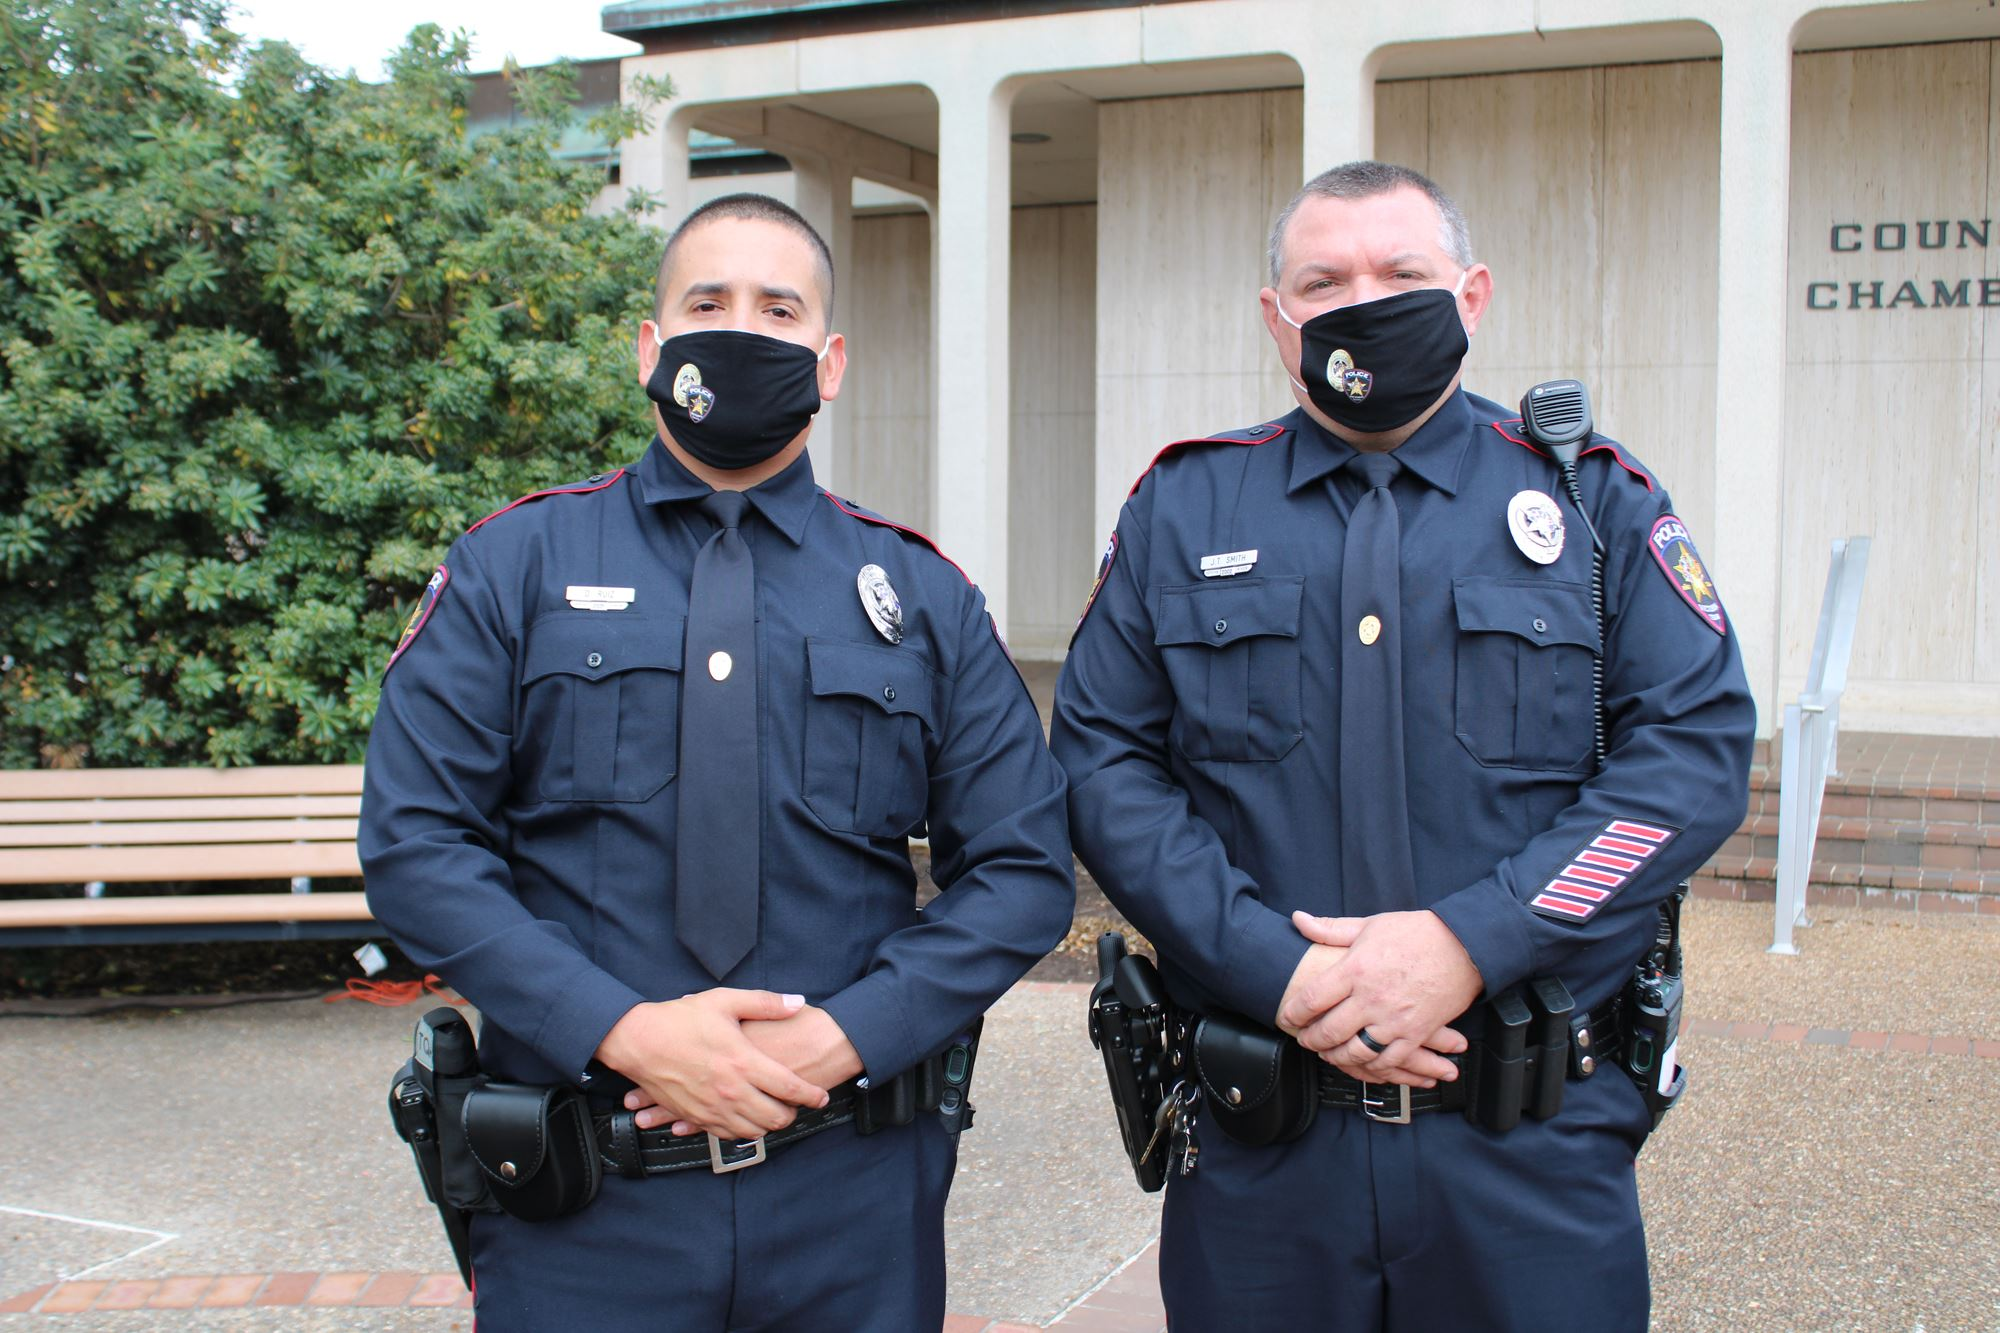 Two uniformed officers wearing facial coverings stand side by side.